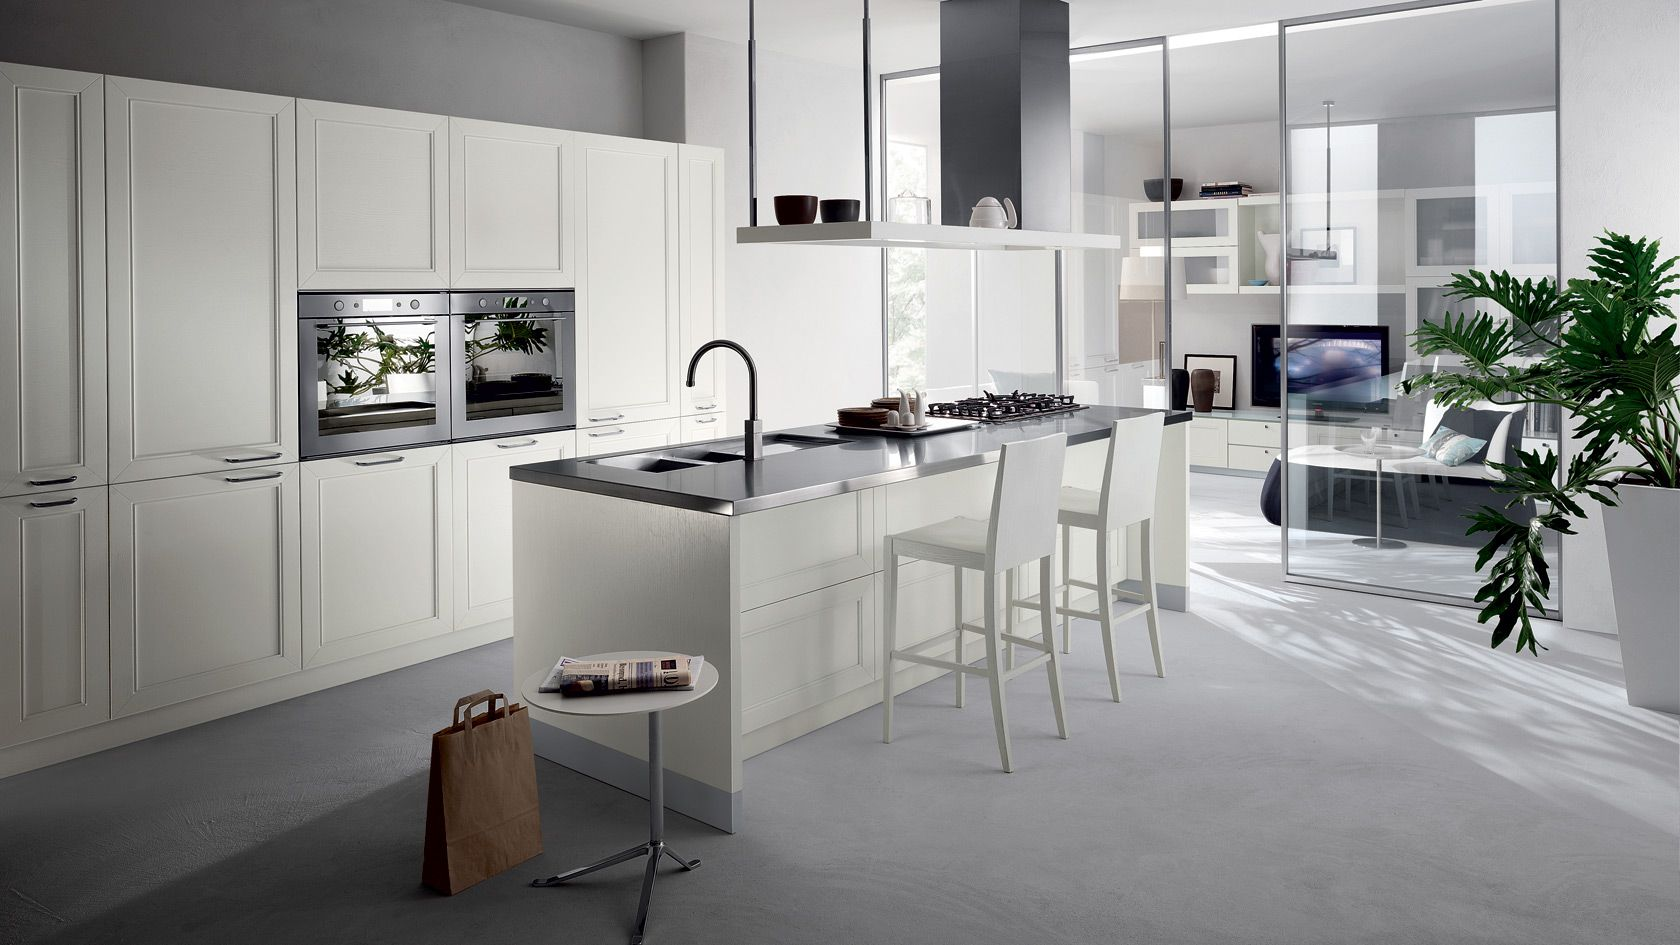 glass doors, simplicity cucina regard scavolini | kitchen, Hause ideen